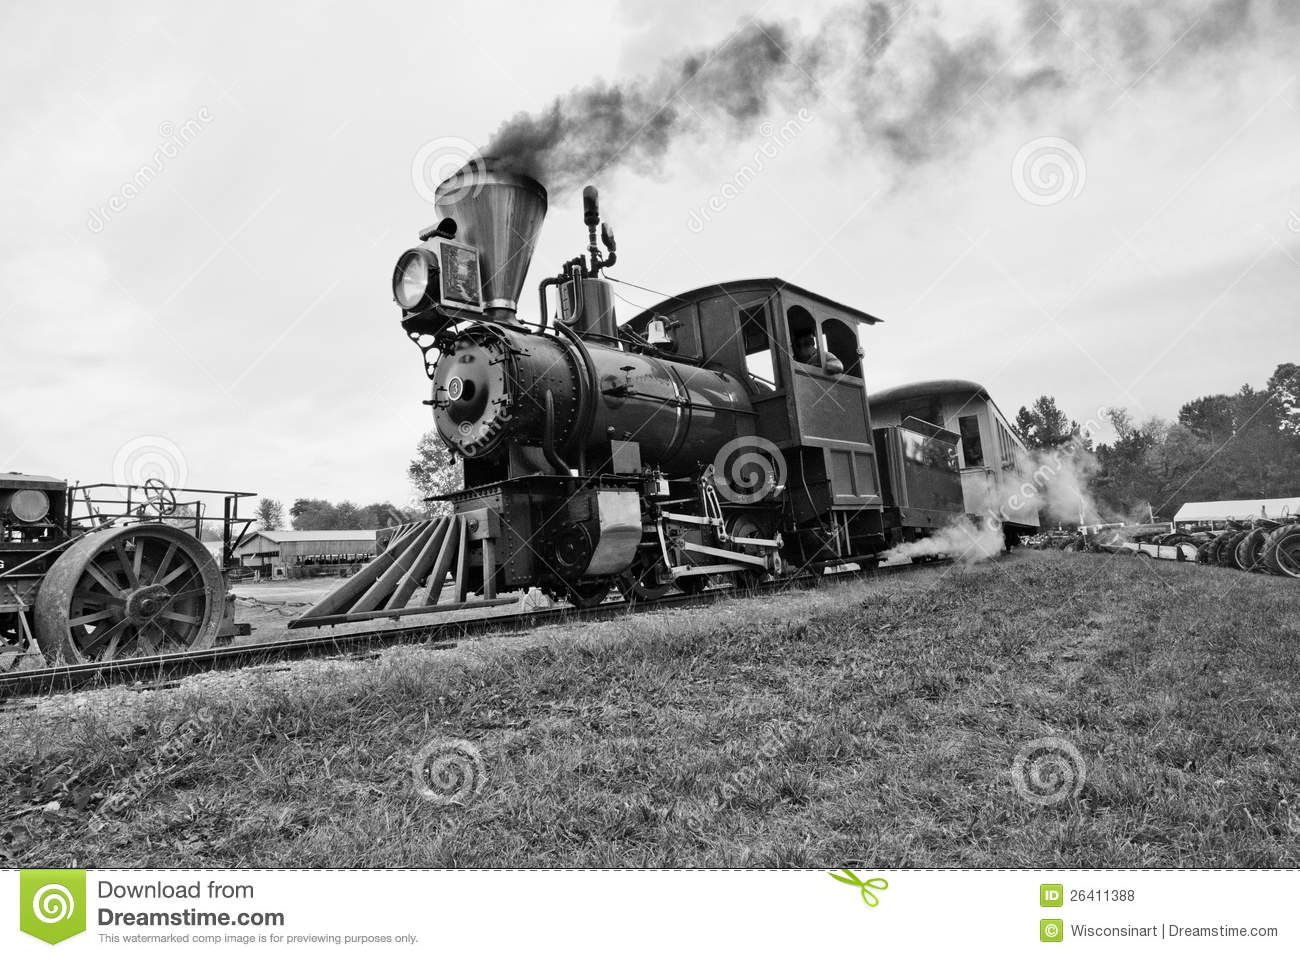 Old Time Car Wallpaper Hd Locomotive Ancienne De Train De Vapeur De Cru Photo Stock